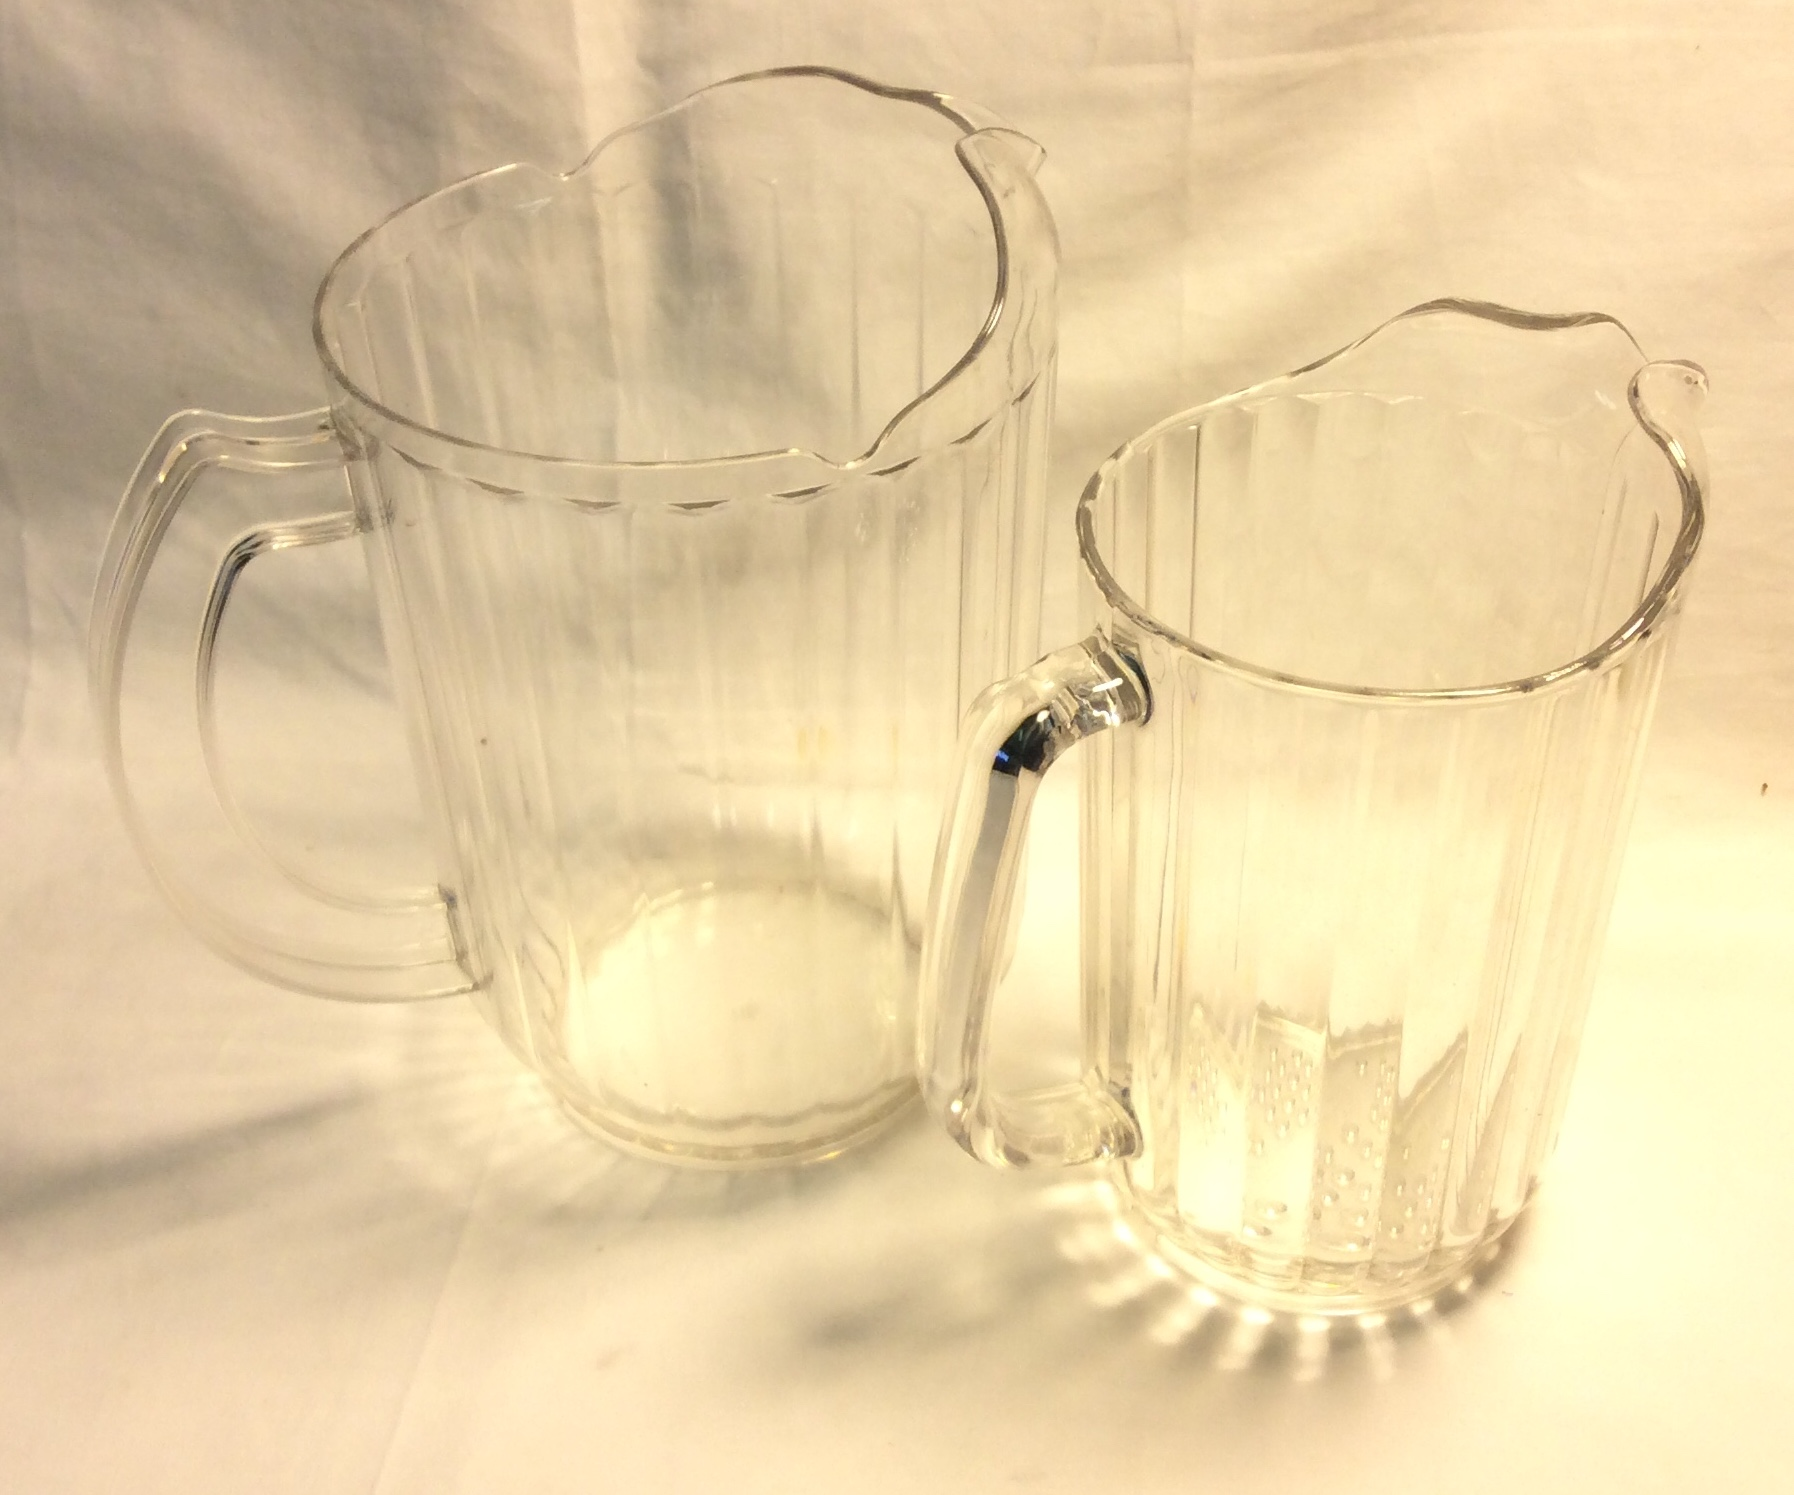 Acryllic water jugs